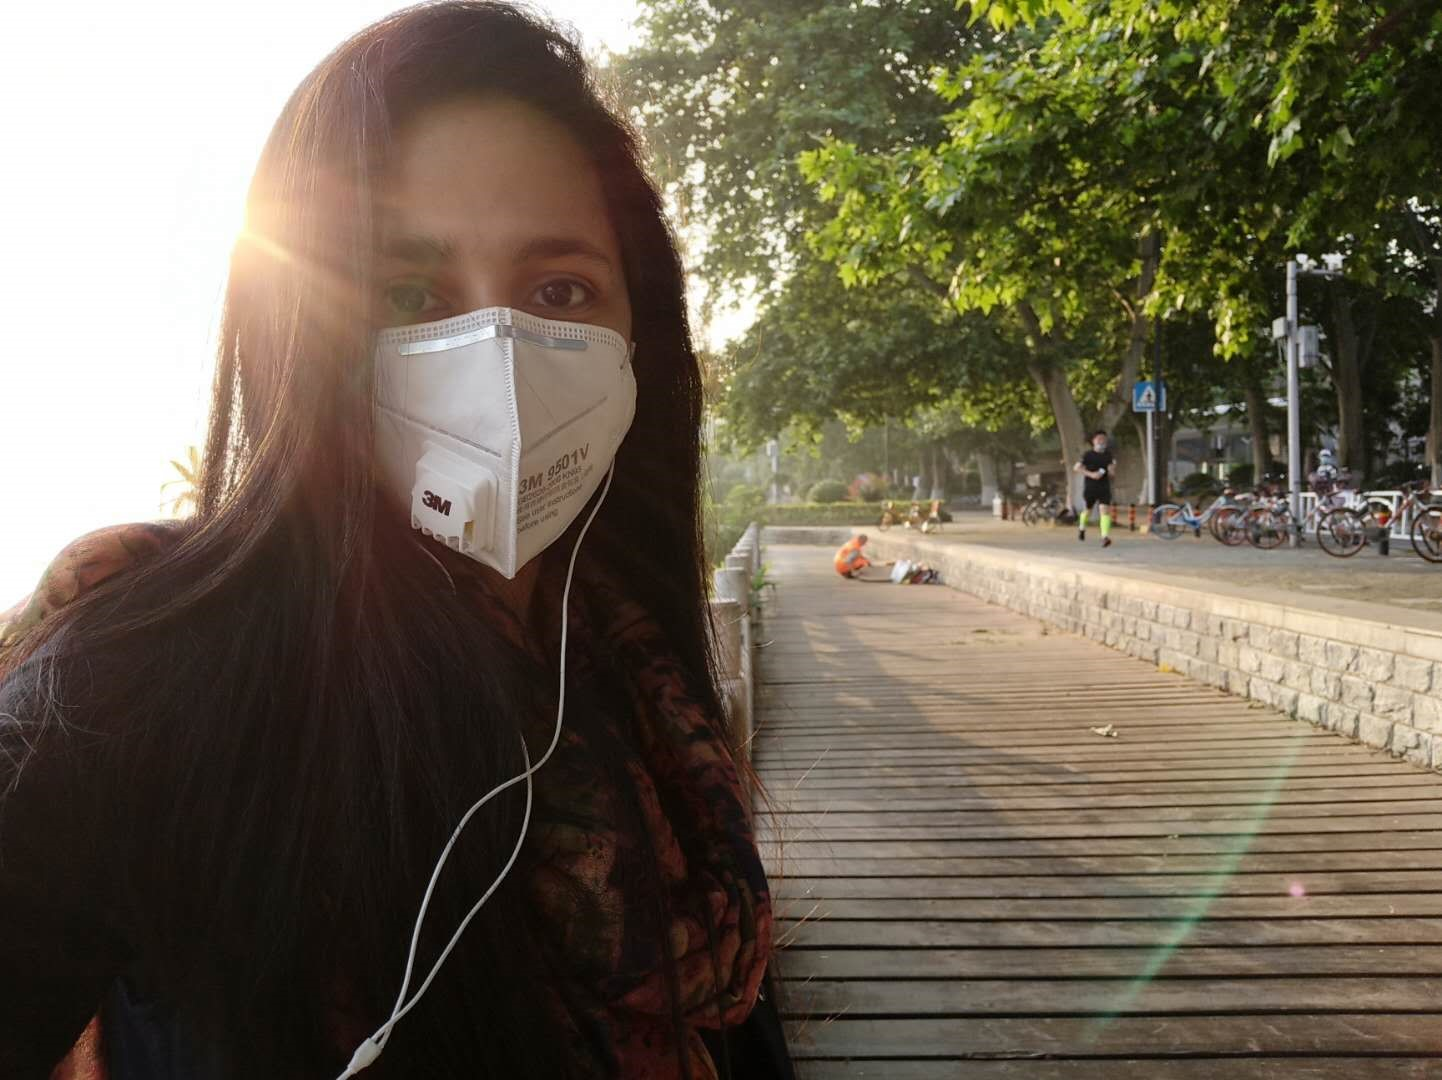 My first-hand experience with Wuhan's fight against the epidemic